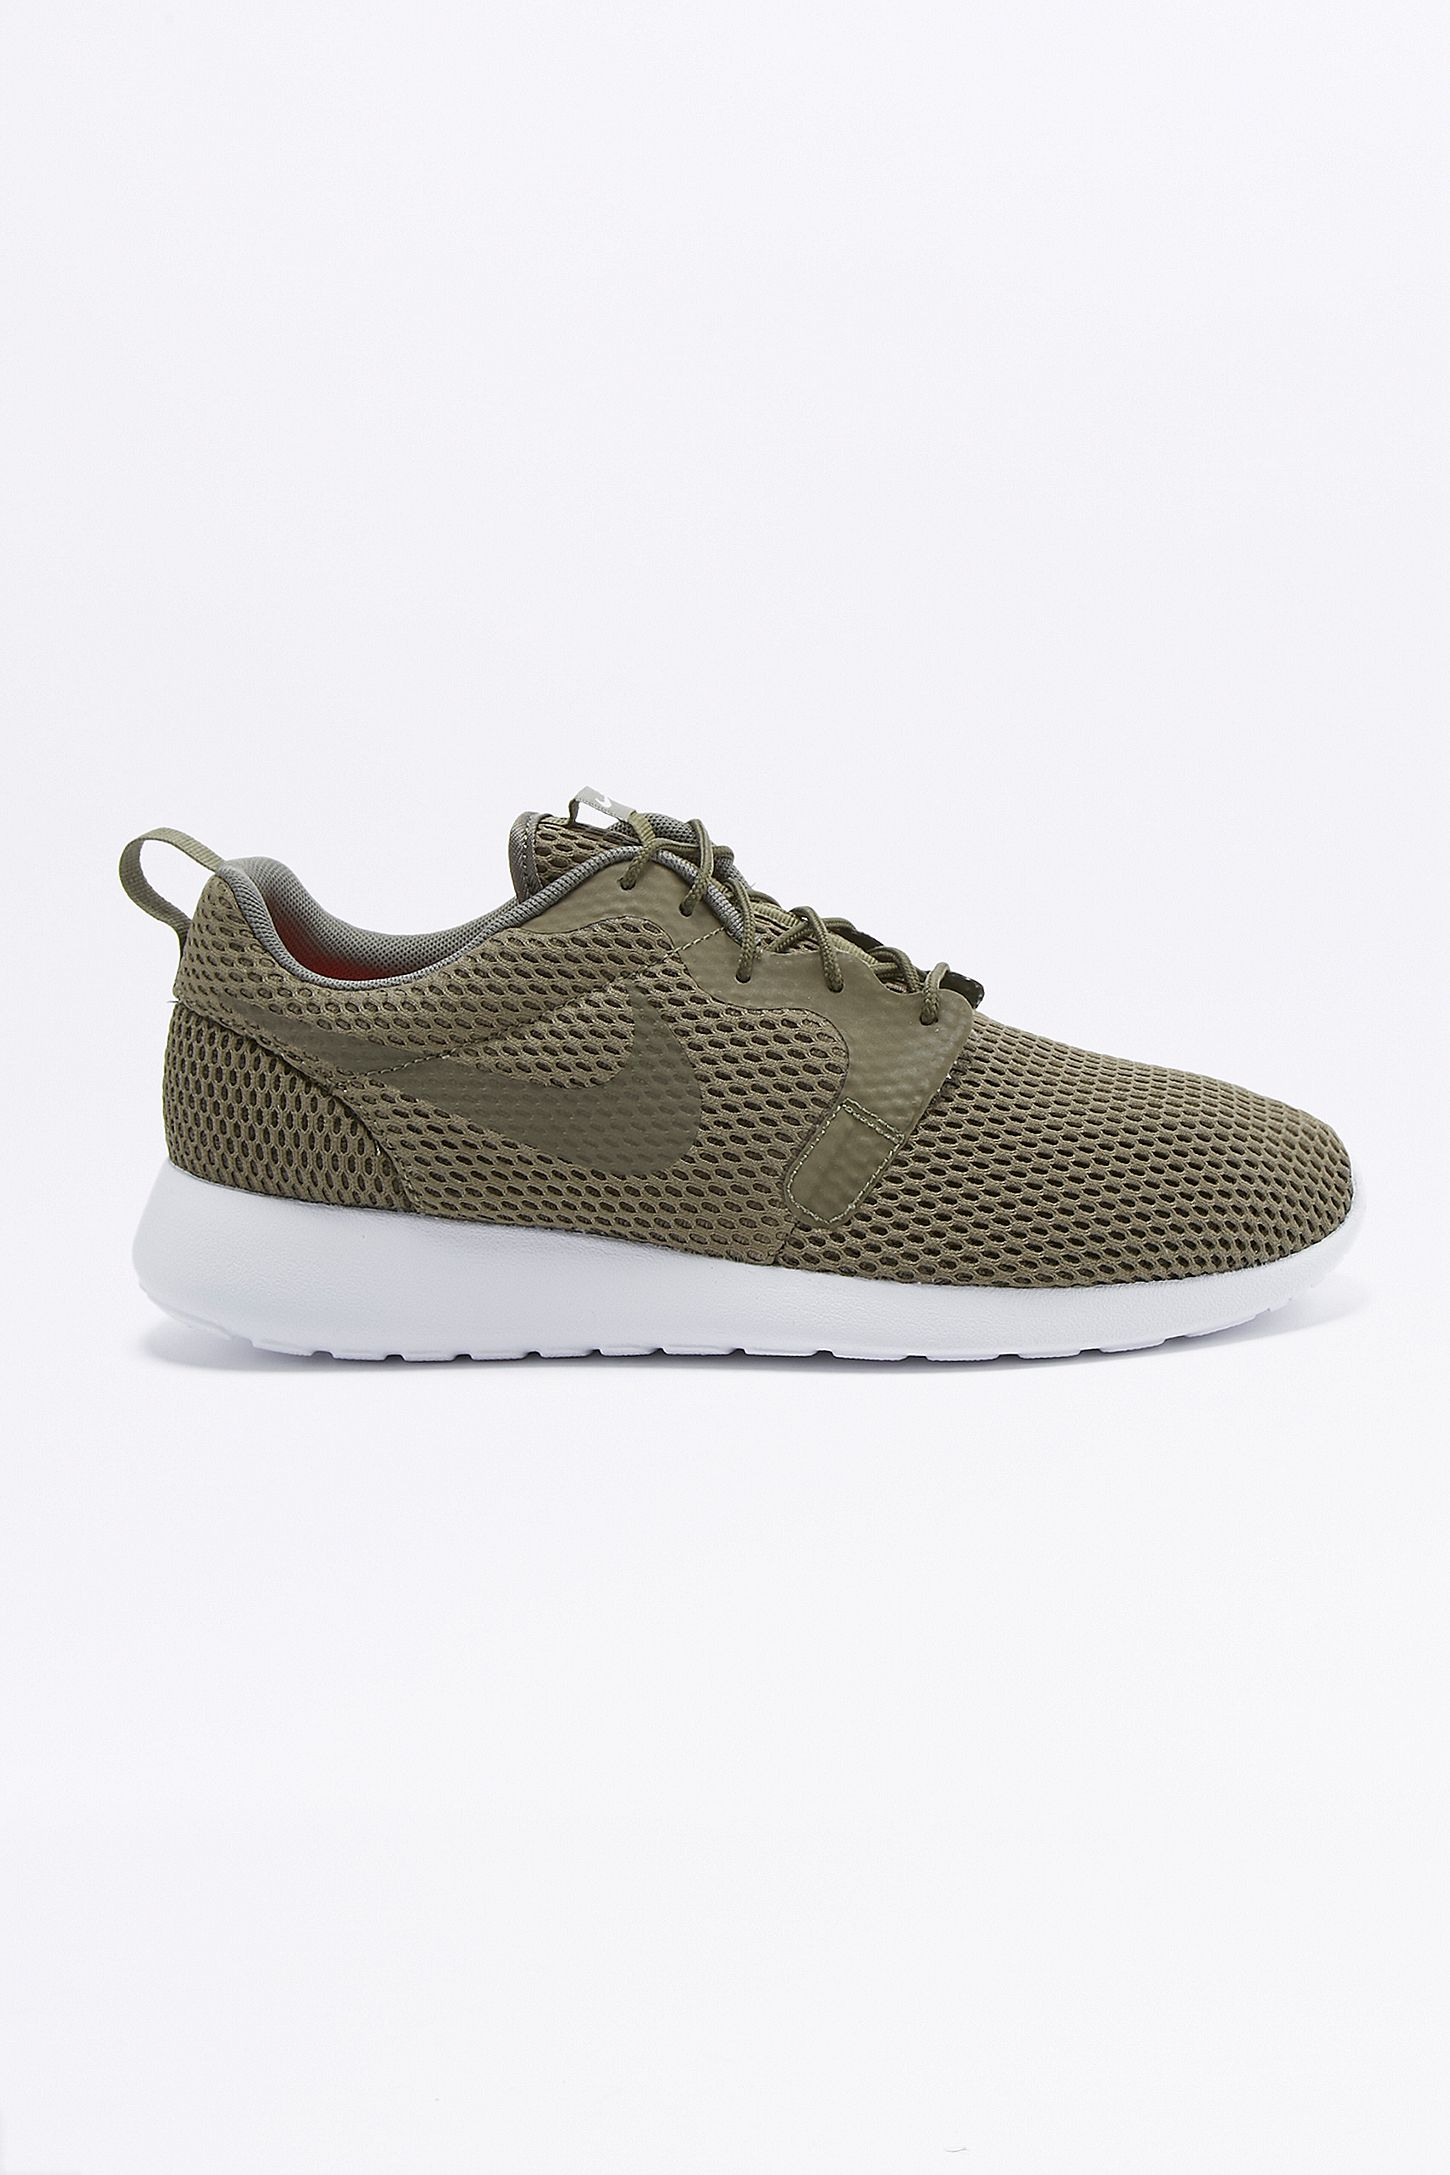 premium selection 7a29d d7313 Nike Roshe One Hyper Breathe Khaki Trainers. Click on image to zoom. Hover  to zoom. Double Tap to Zoom